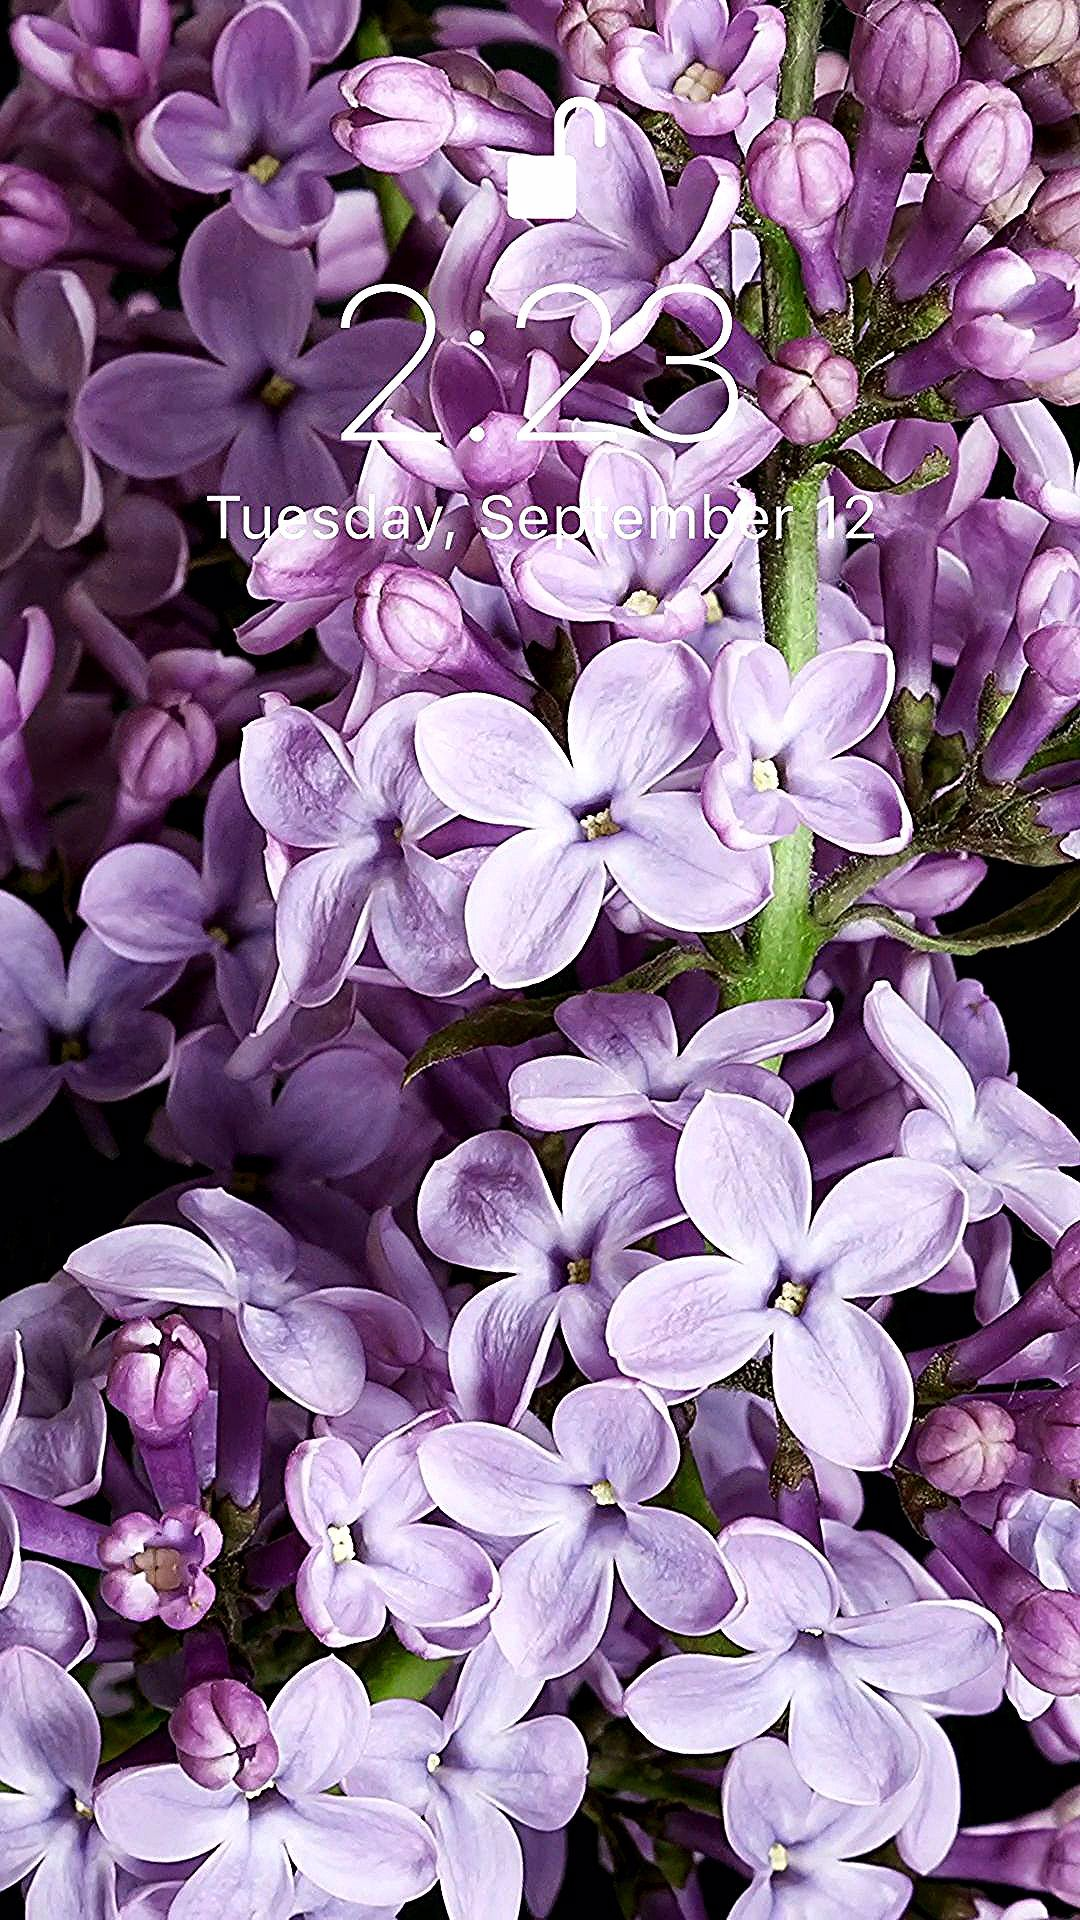 Amazing lilac wallpaper for your iPhone XS from Everpix